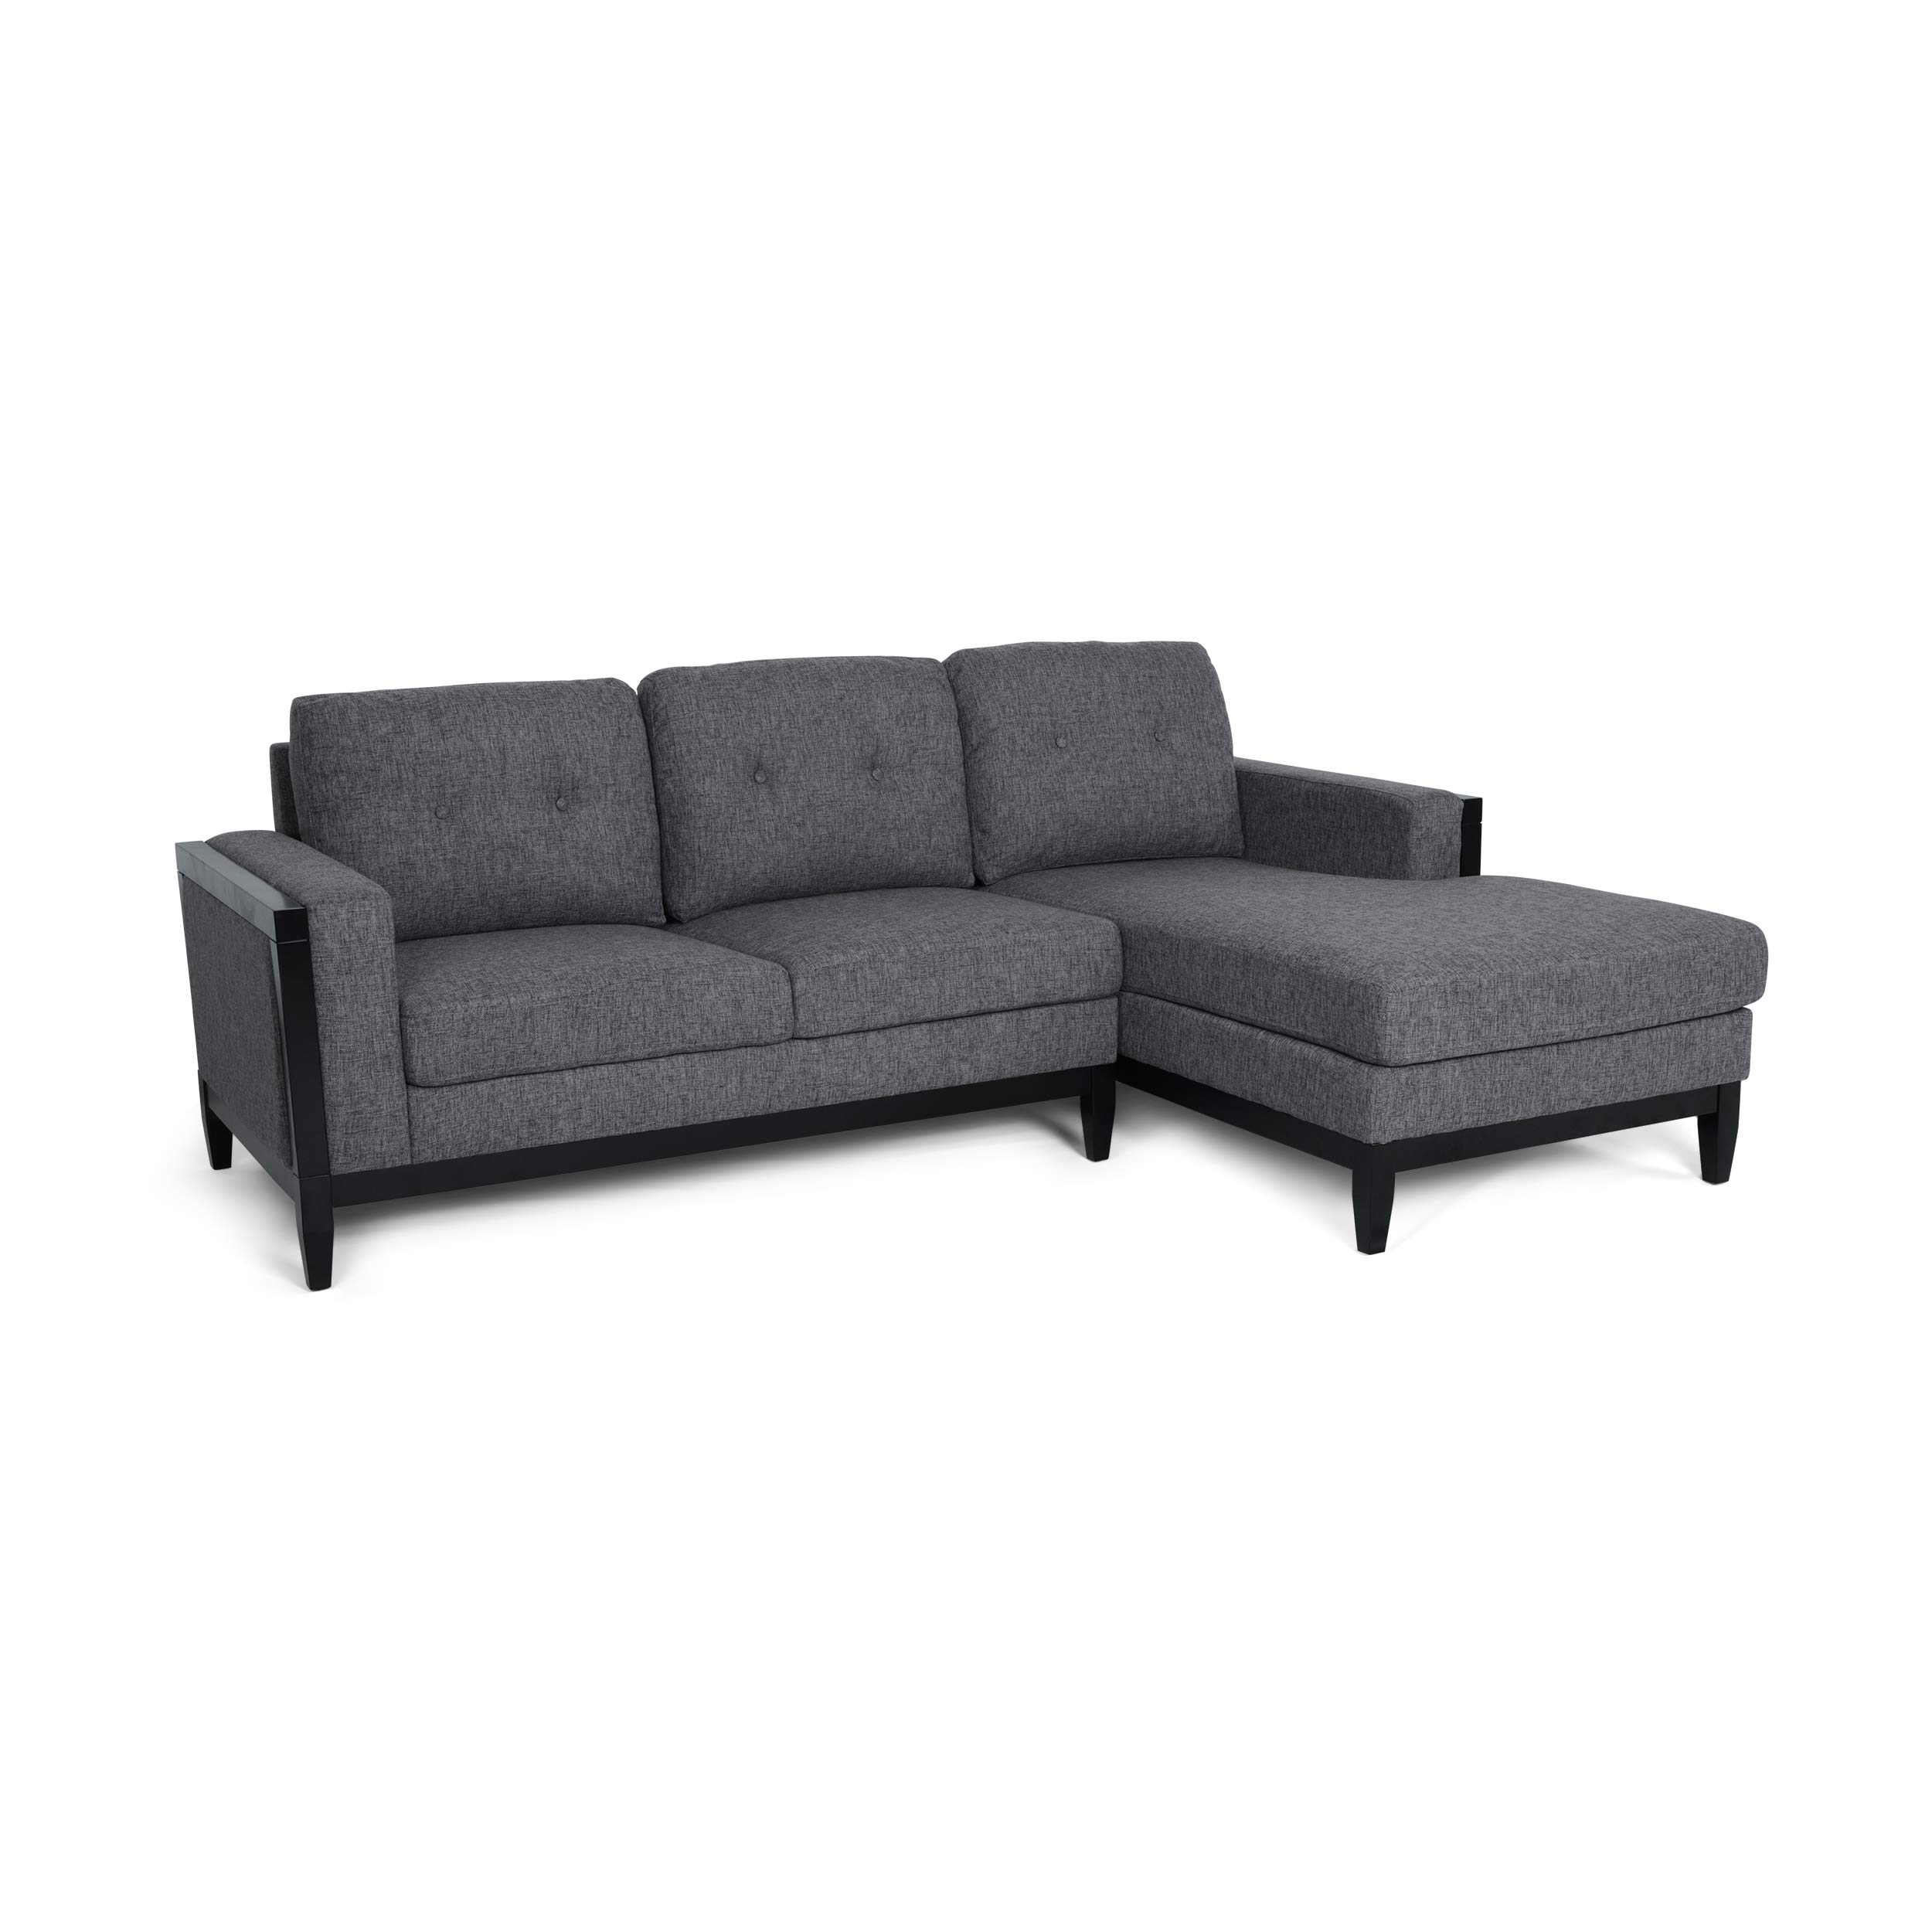 Joanna Mid Century Modern Fabric and Wood Chaise Sectional, Charcoal Tweed and Black by Great Deal Furniture